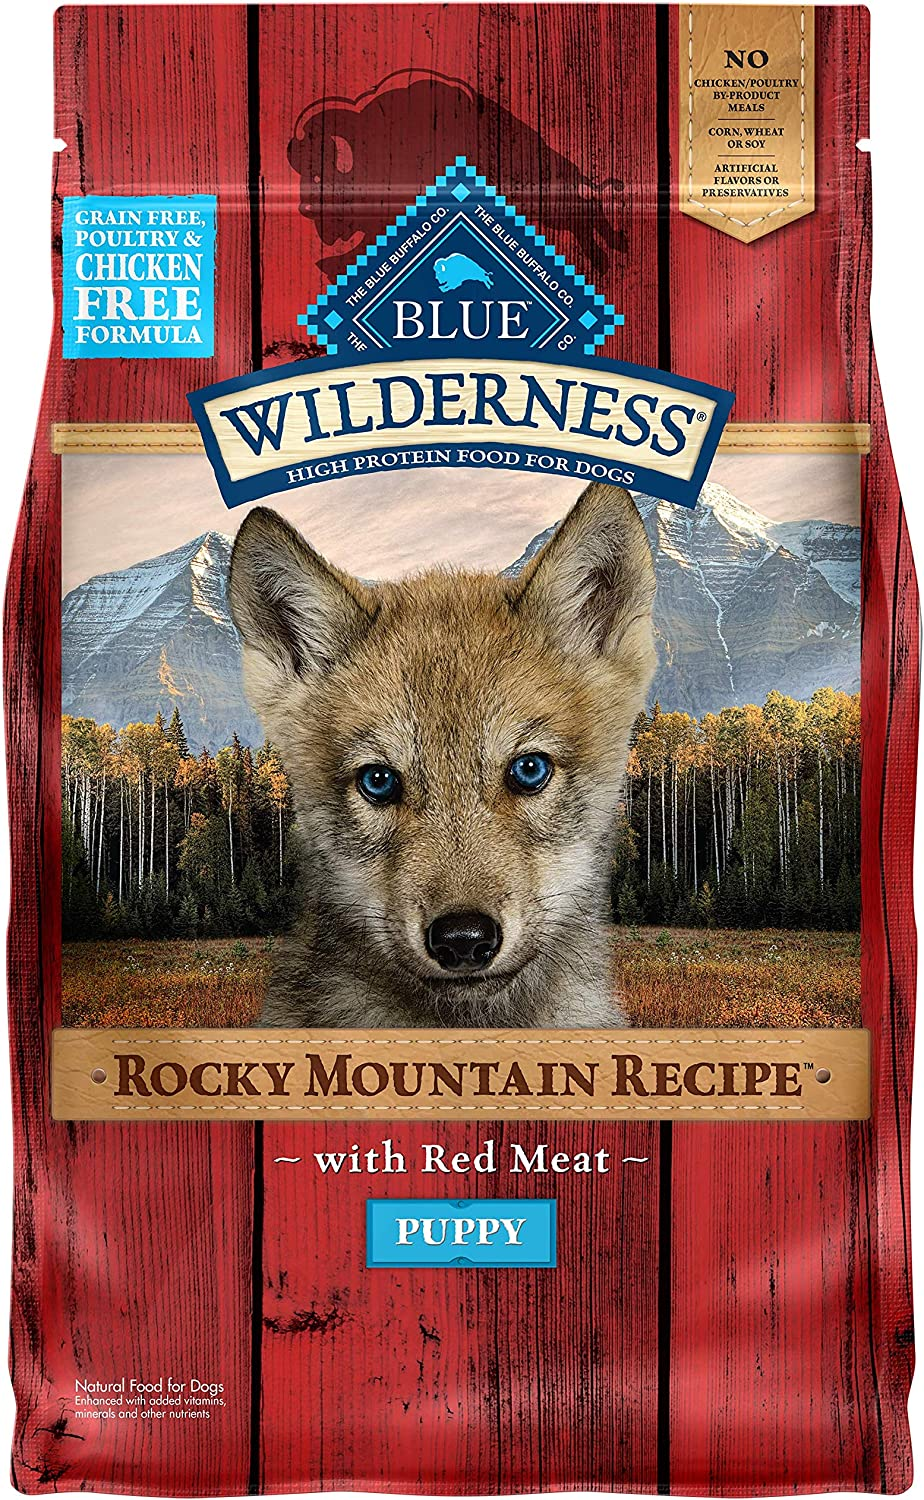 Blue Buffalo Wilderness Rocky Mountain Recipe High Protein, Natural Puppy Dry Dog Food, Red Meat